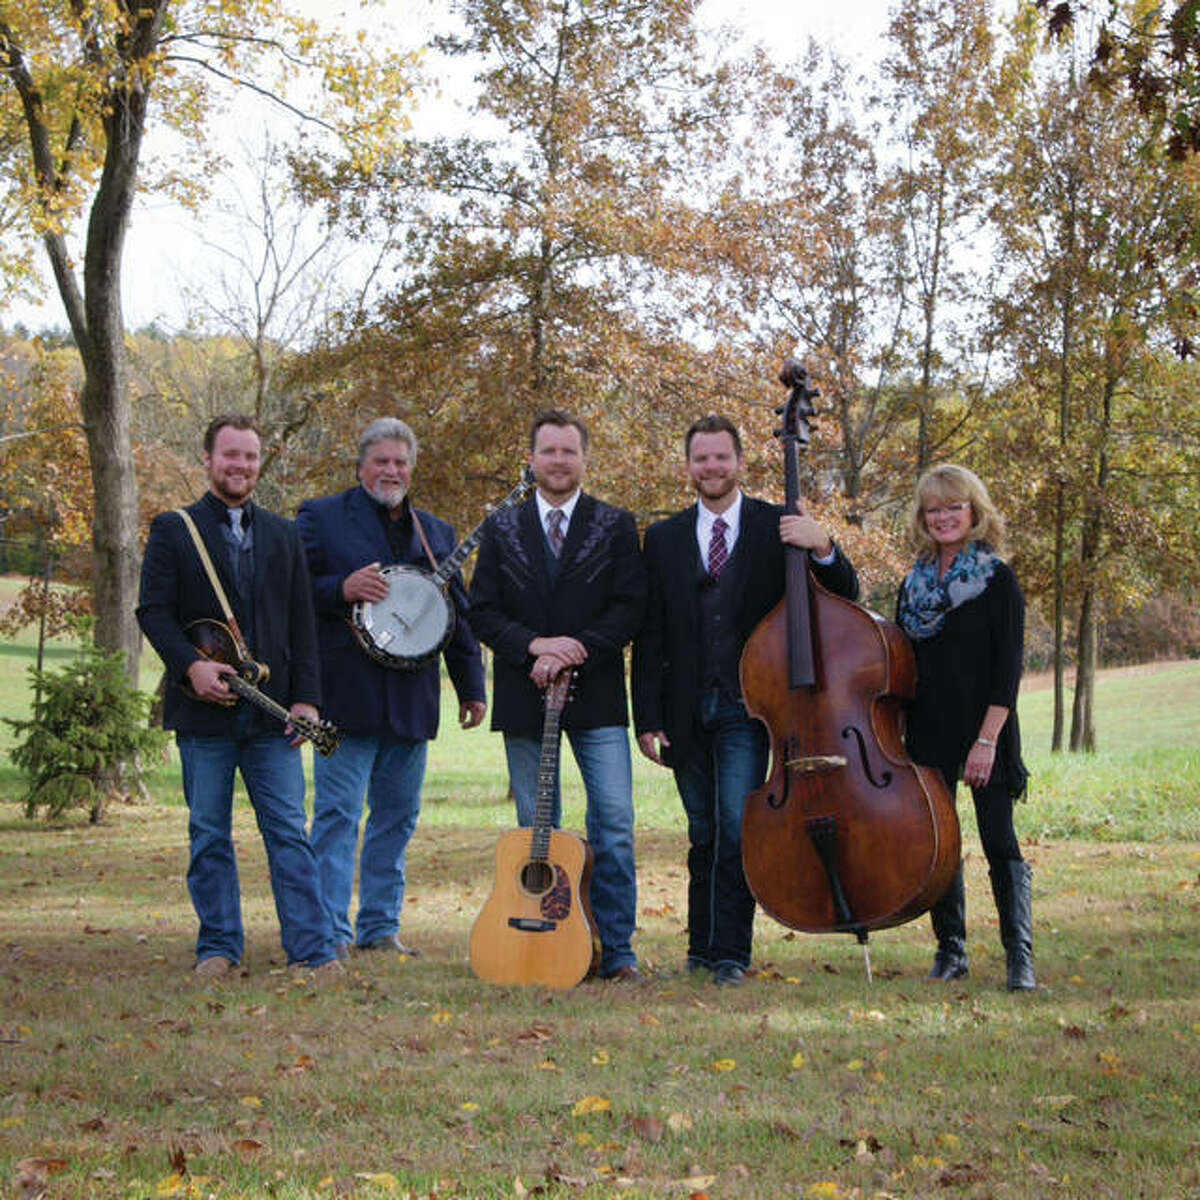 """The Harman Family Bluegrass Band includes family patriarch and leader Mike Harman, 58, his sons - Mark, 30; Jeff, 27; and, John, 21 - accompanied by their mother and family matriarch, Stacy Harman, 58. They will celebrate their 40th annual """"Harmans and Guests"""" concert Saturday, always held at Lewis and Clark Community College in Godfrey."""